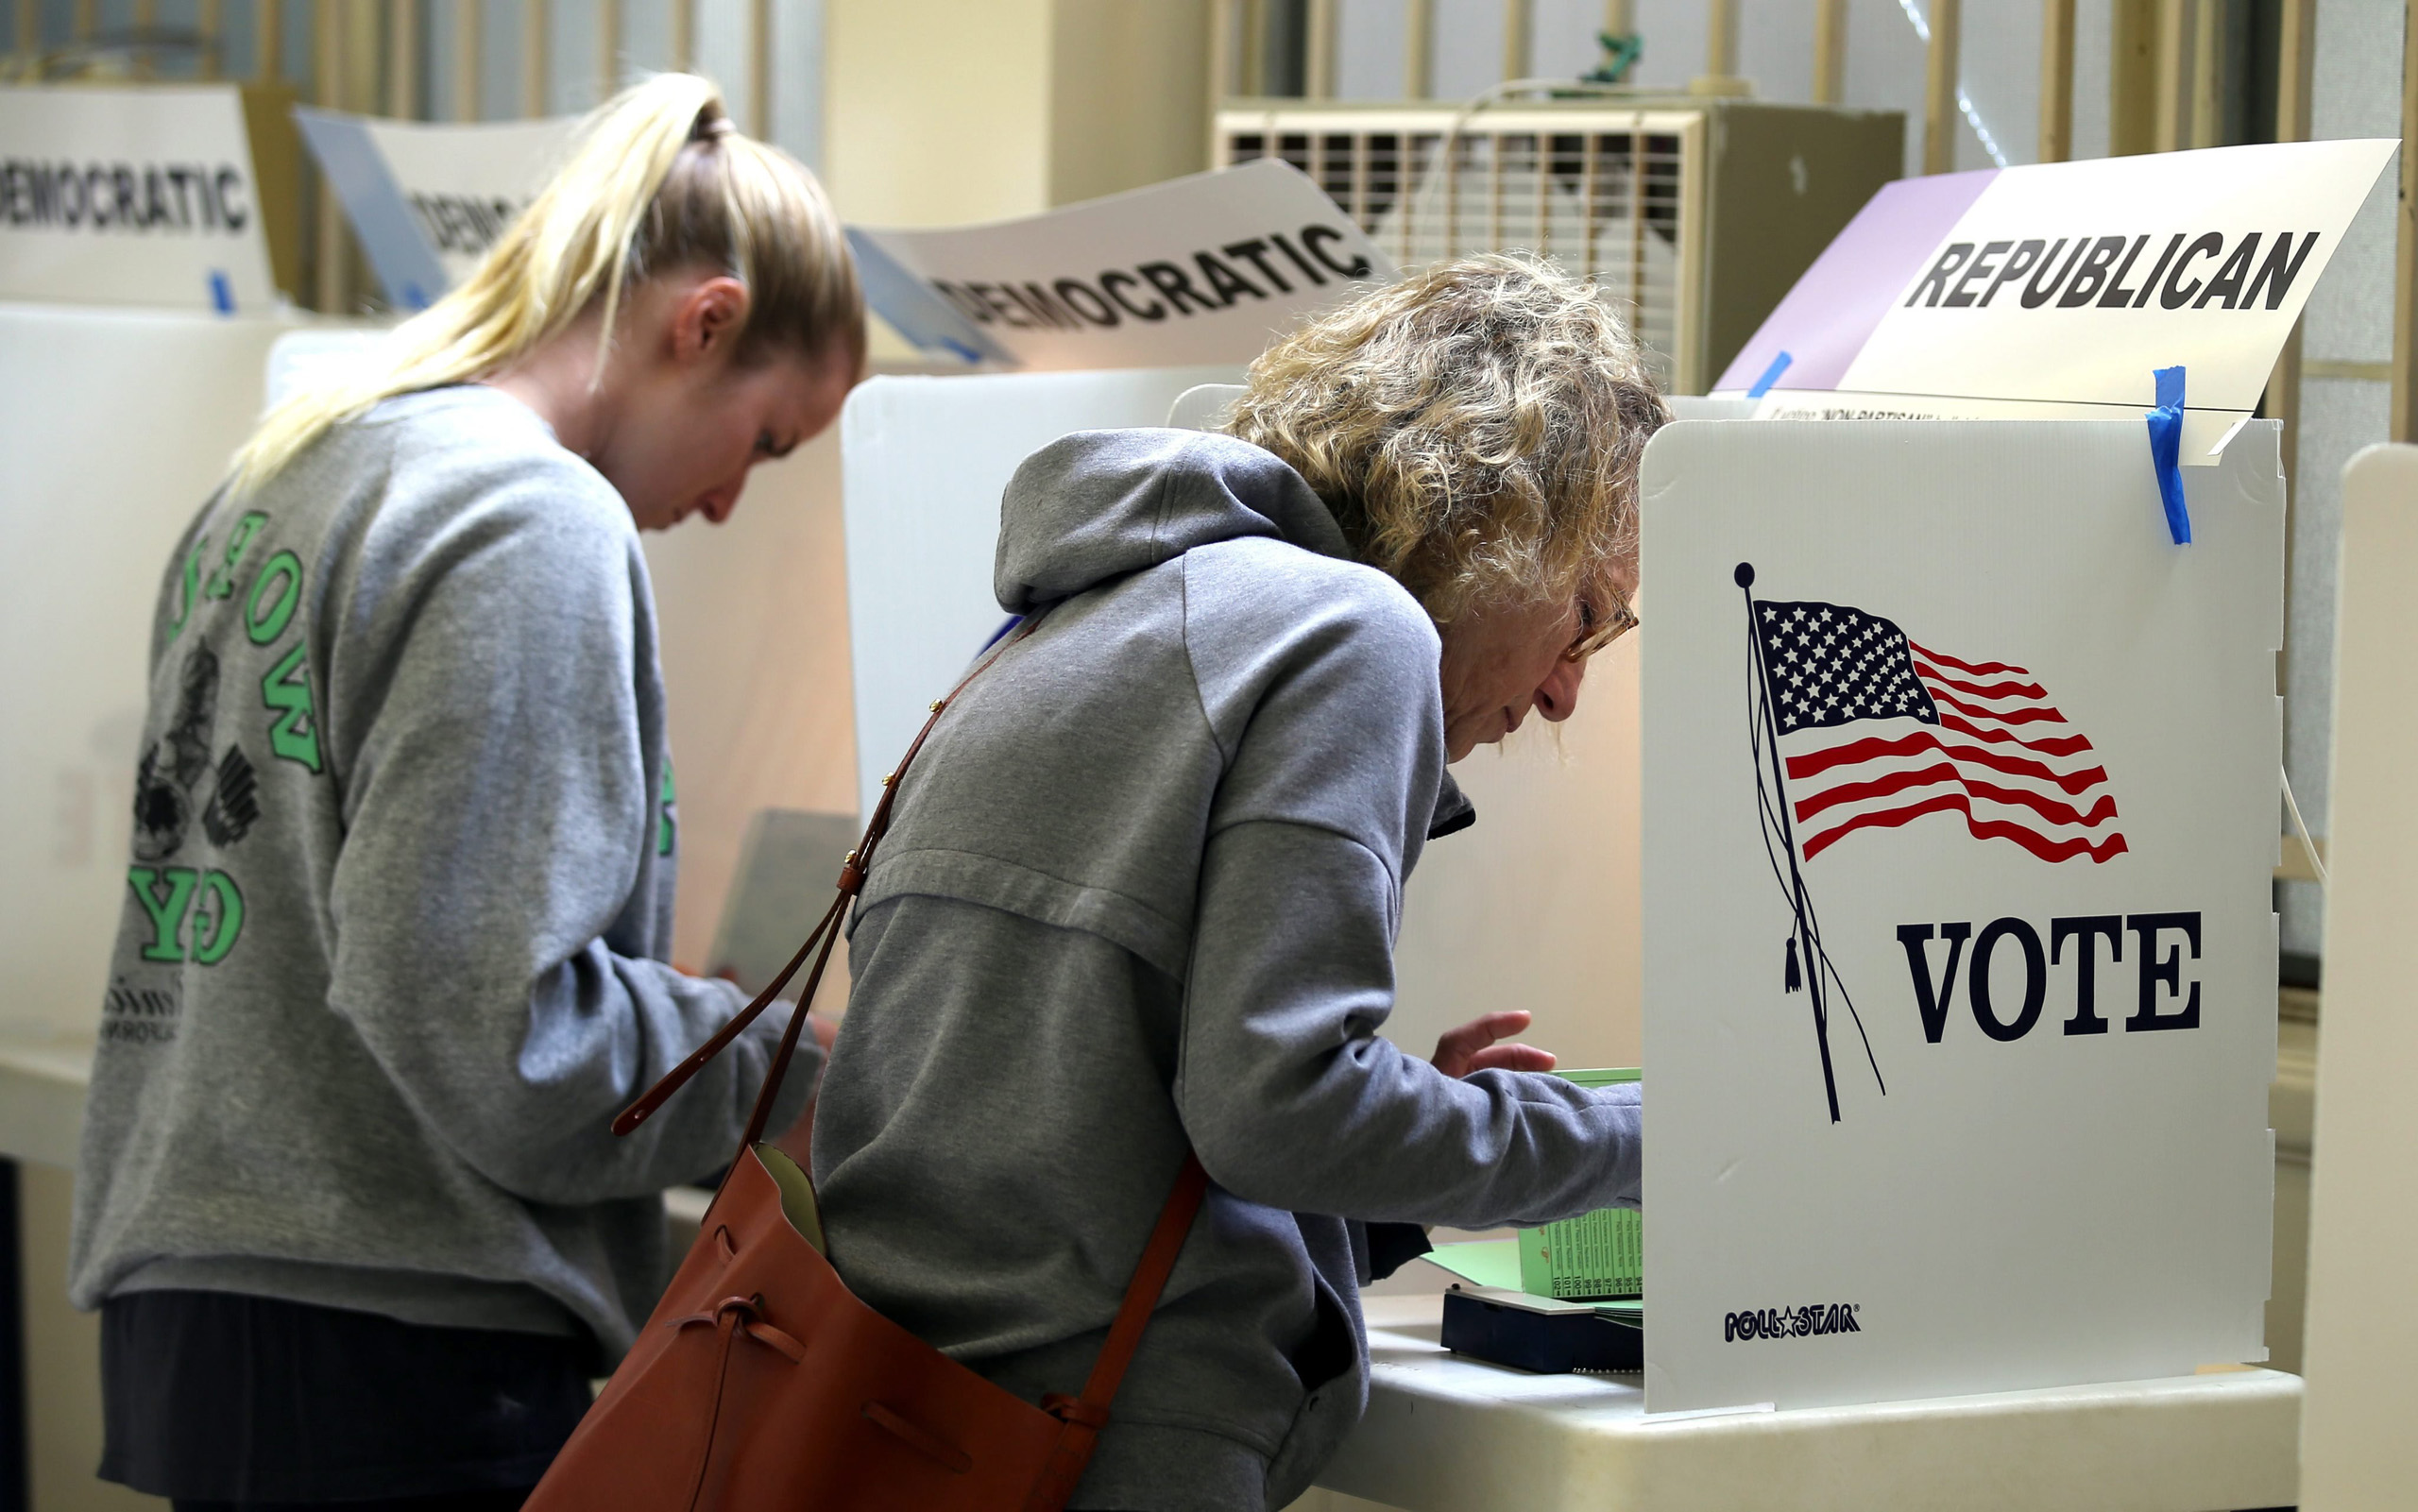 Voters cast their ballots at the Lutheran Church in Pacific Palisades, Calif. on June 07, 2016.